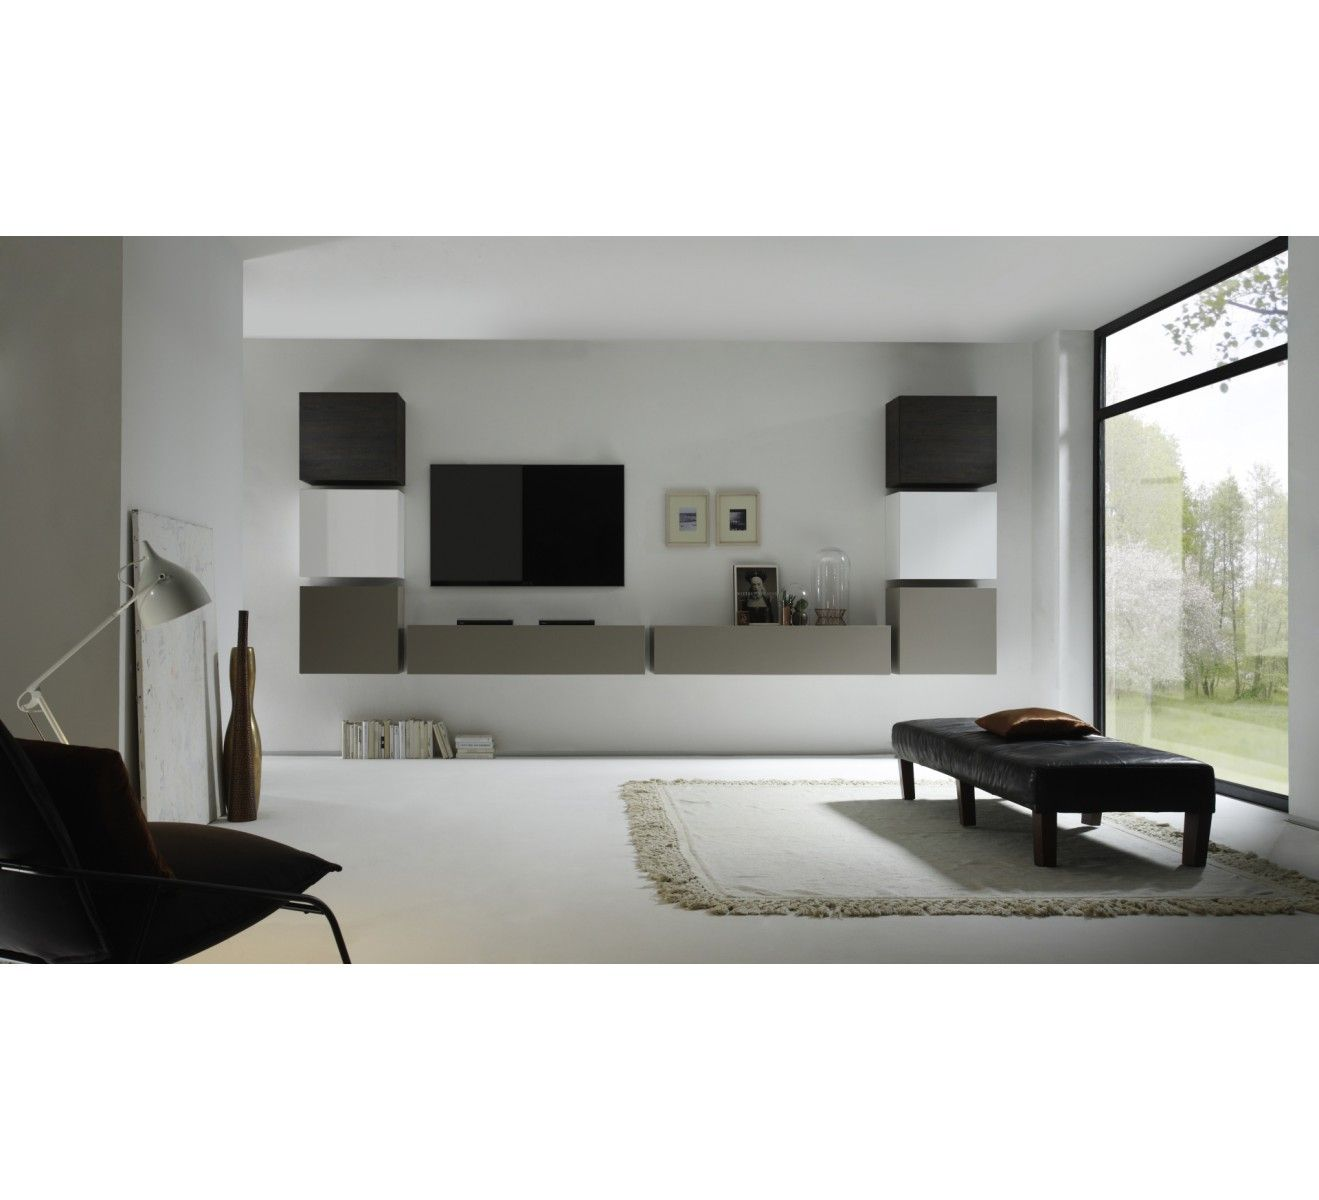 Beau Ensemble Meuble Tv Gris D Coration Fran Aise Pinterest  # Ensemble De Meuble Tv